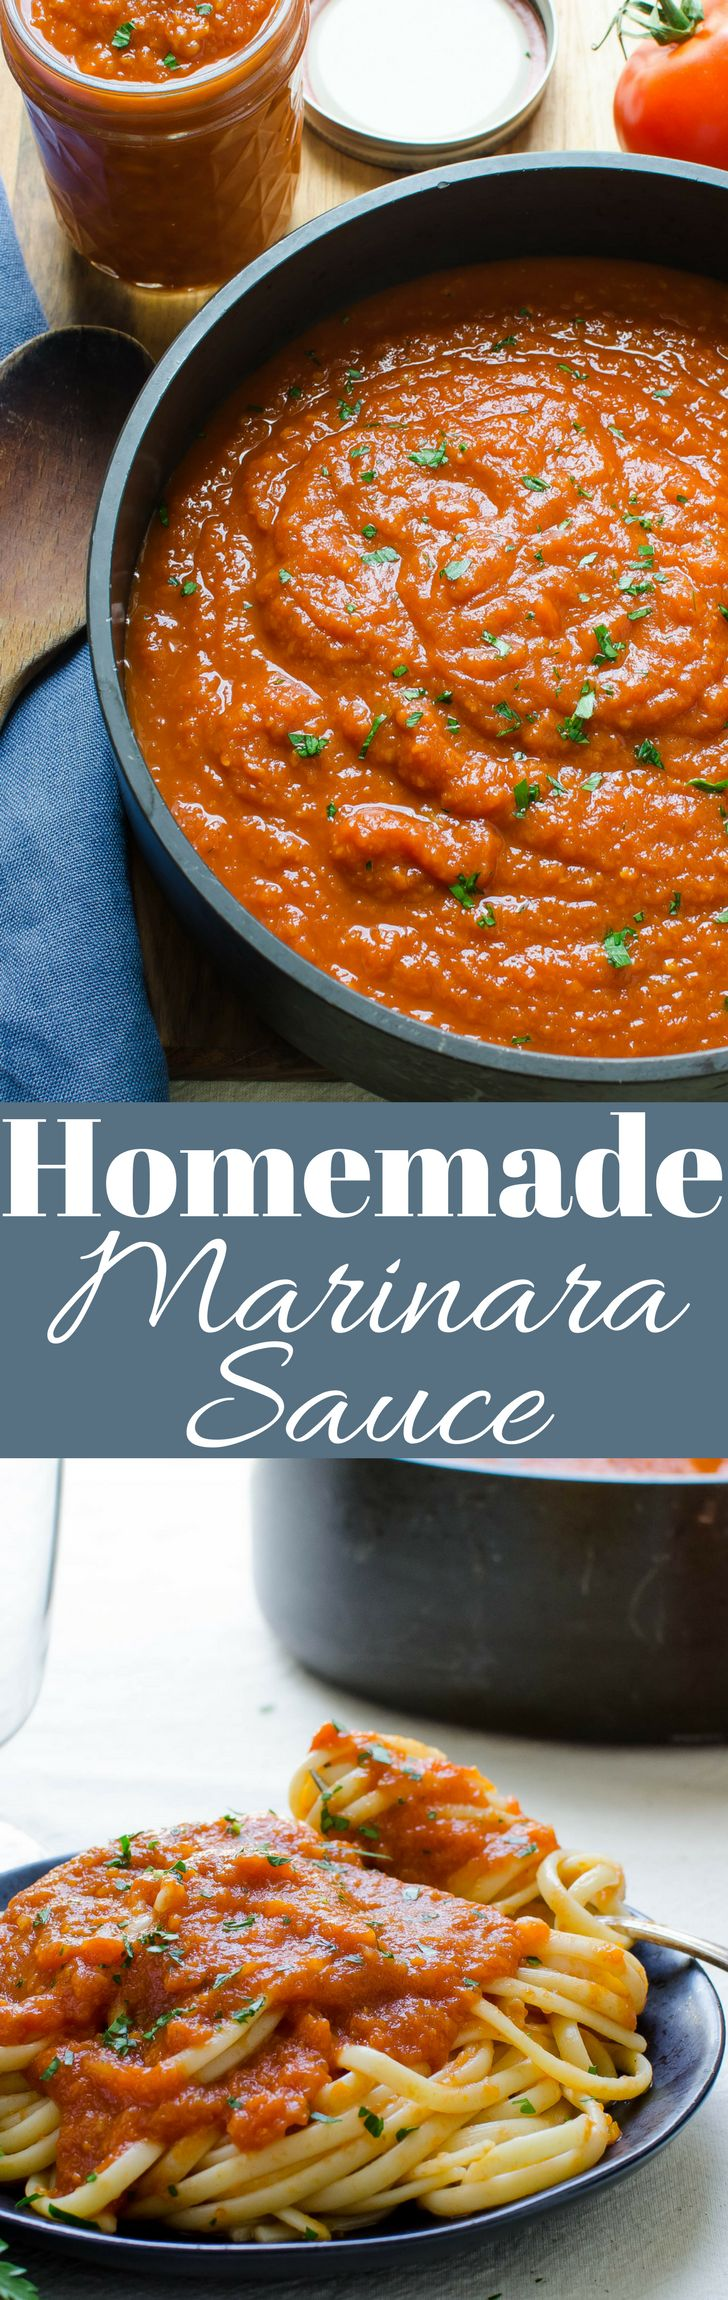 Here's how to make a homemade marinara sauce instead of buying jarred sauces. No fillers or preservatives, just healthy vegetables and lots of flavor!